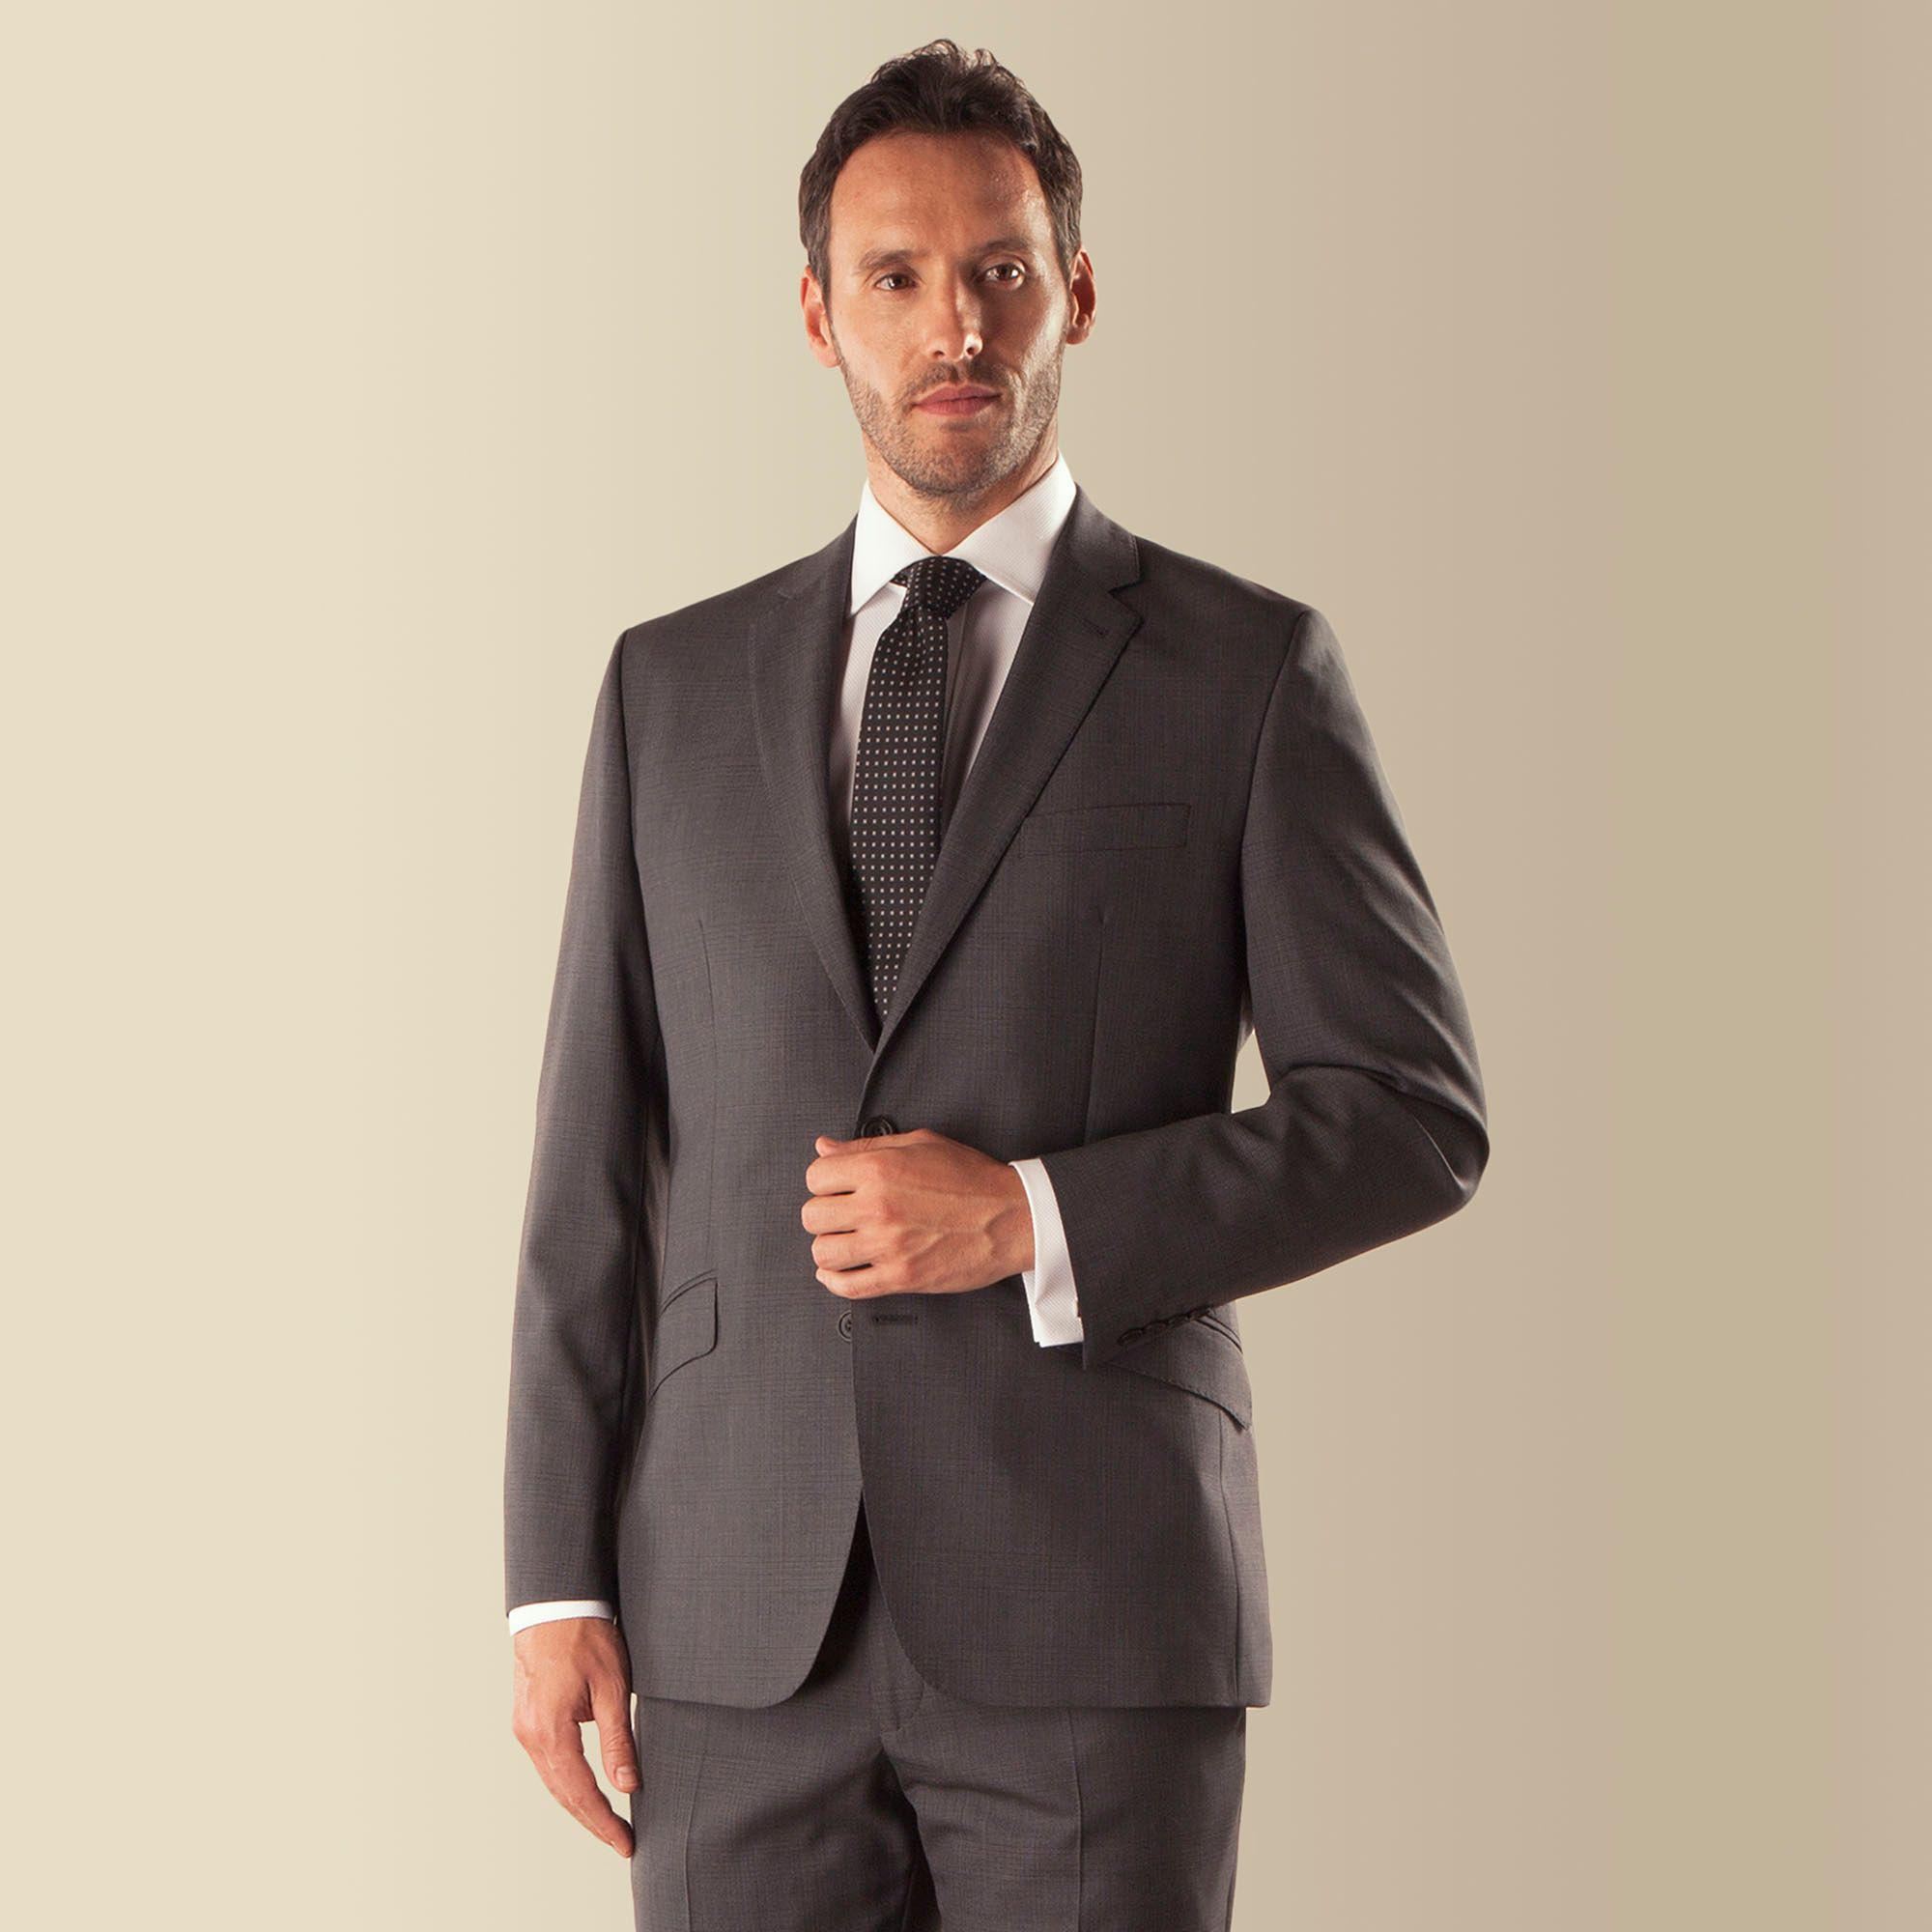 de6716f13c4a0b J By Jasper Conran - Gray Grey Check 2 Button Front Tailored Fit Luxury  Suit Jacket. View fullscreen